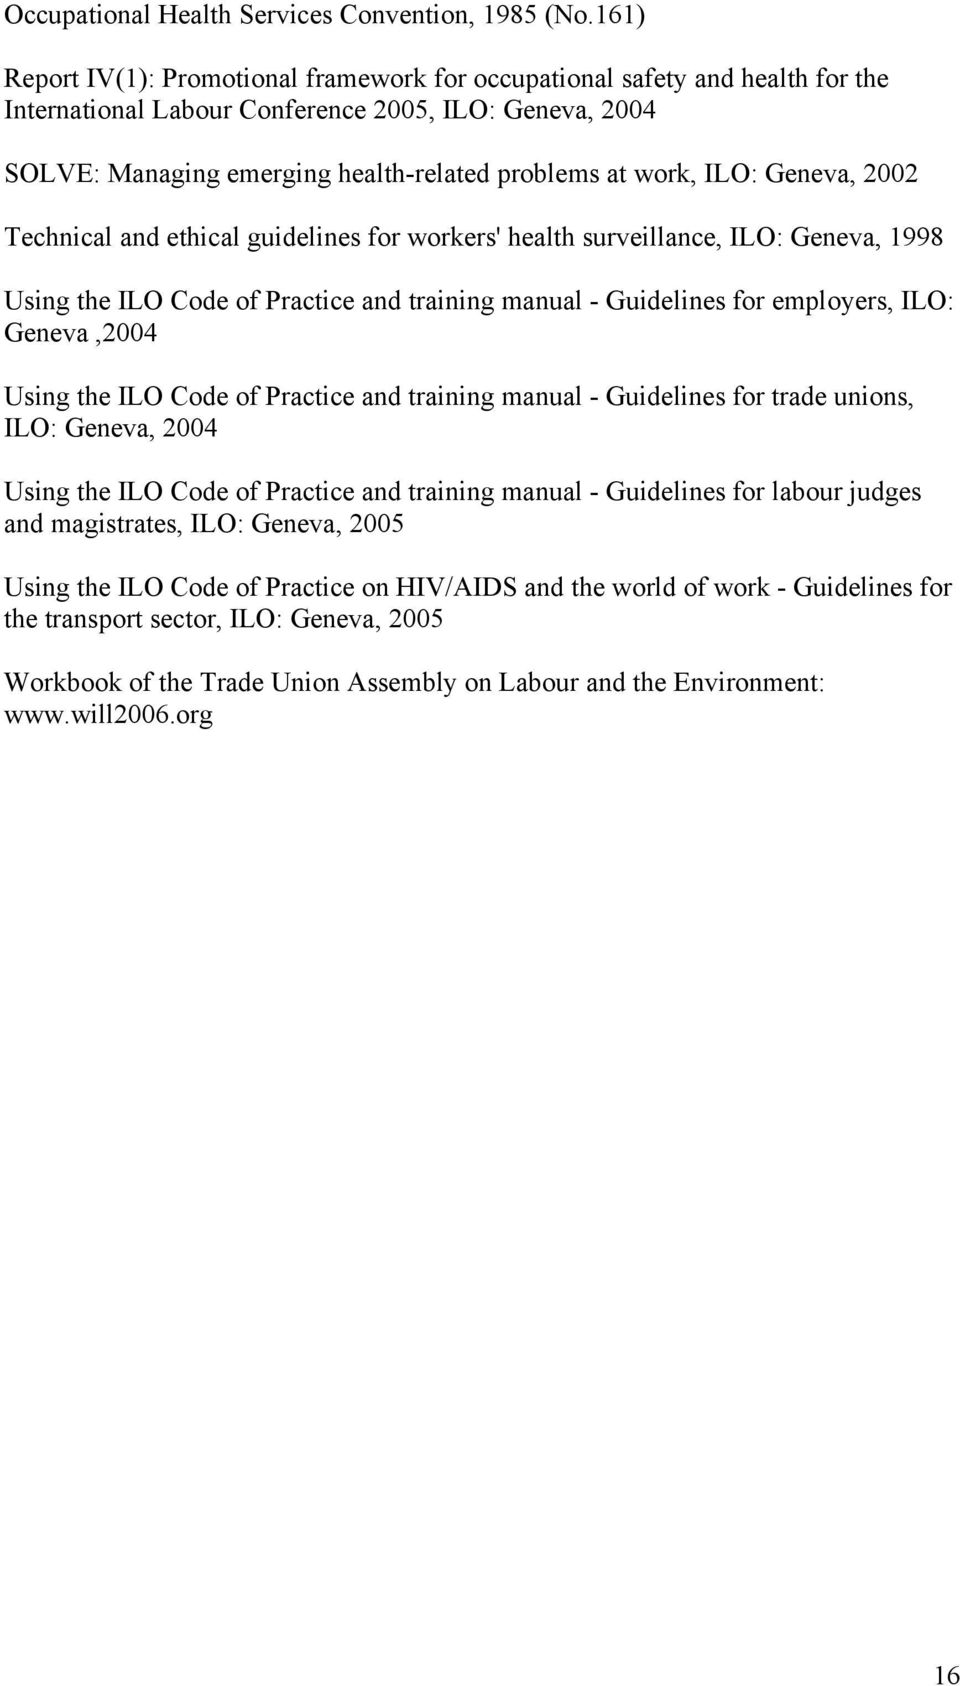 ILO: Geneva, 2002 Technical and ethical guidelines for workers' health surveillance, ILO: Geneva, 1998 Using the ILO Code of Practice and training manual - Guidelines for employers, ILO: Geneva,2004